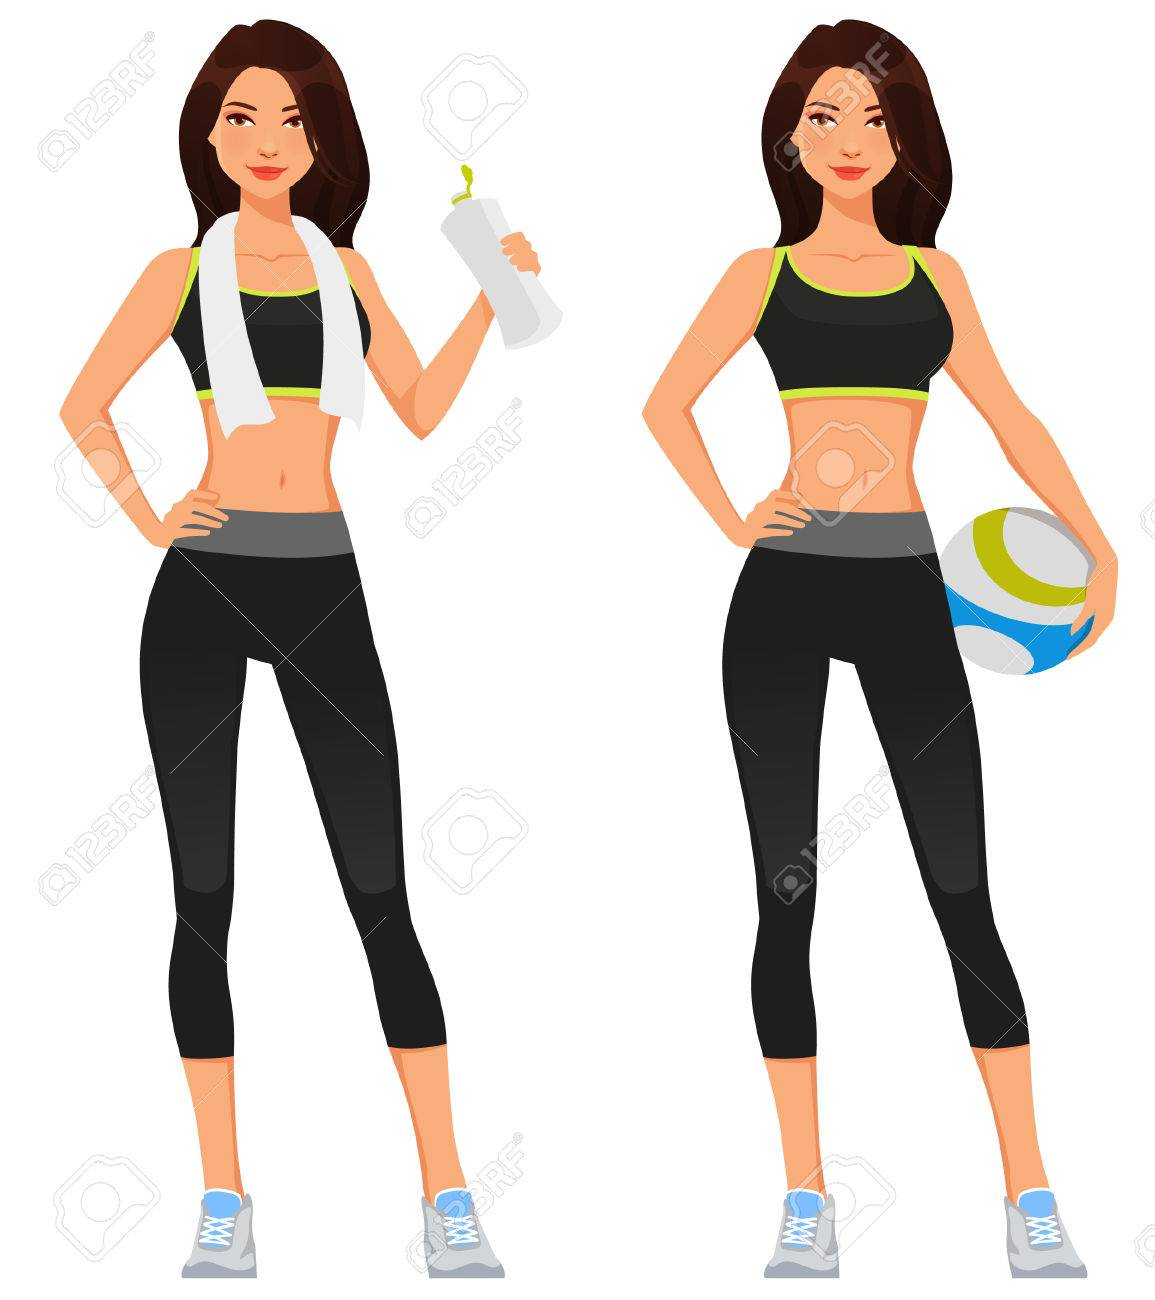 Young Fit Woman In Sportswear Royalty Free Cliparts Vectors And Stock Illustration Image 71840439 219 fitness vectors & graphics to download fitness 219. young fit woman in sportswear